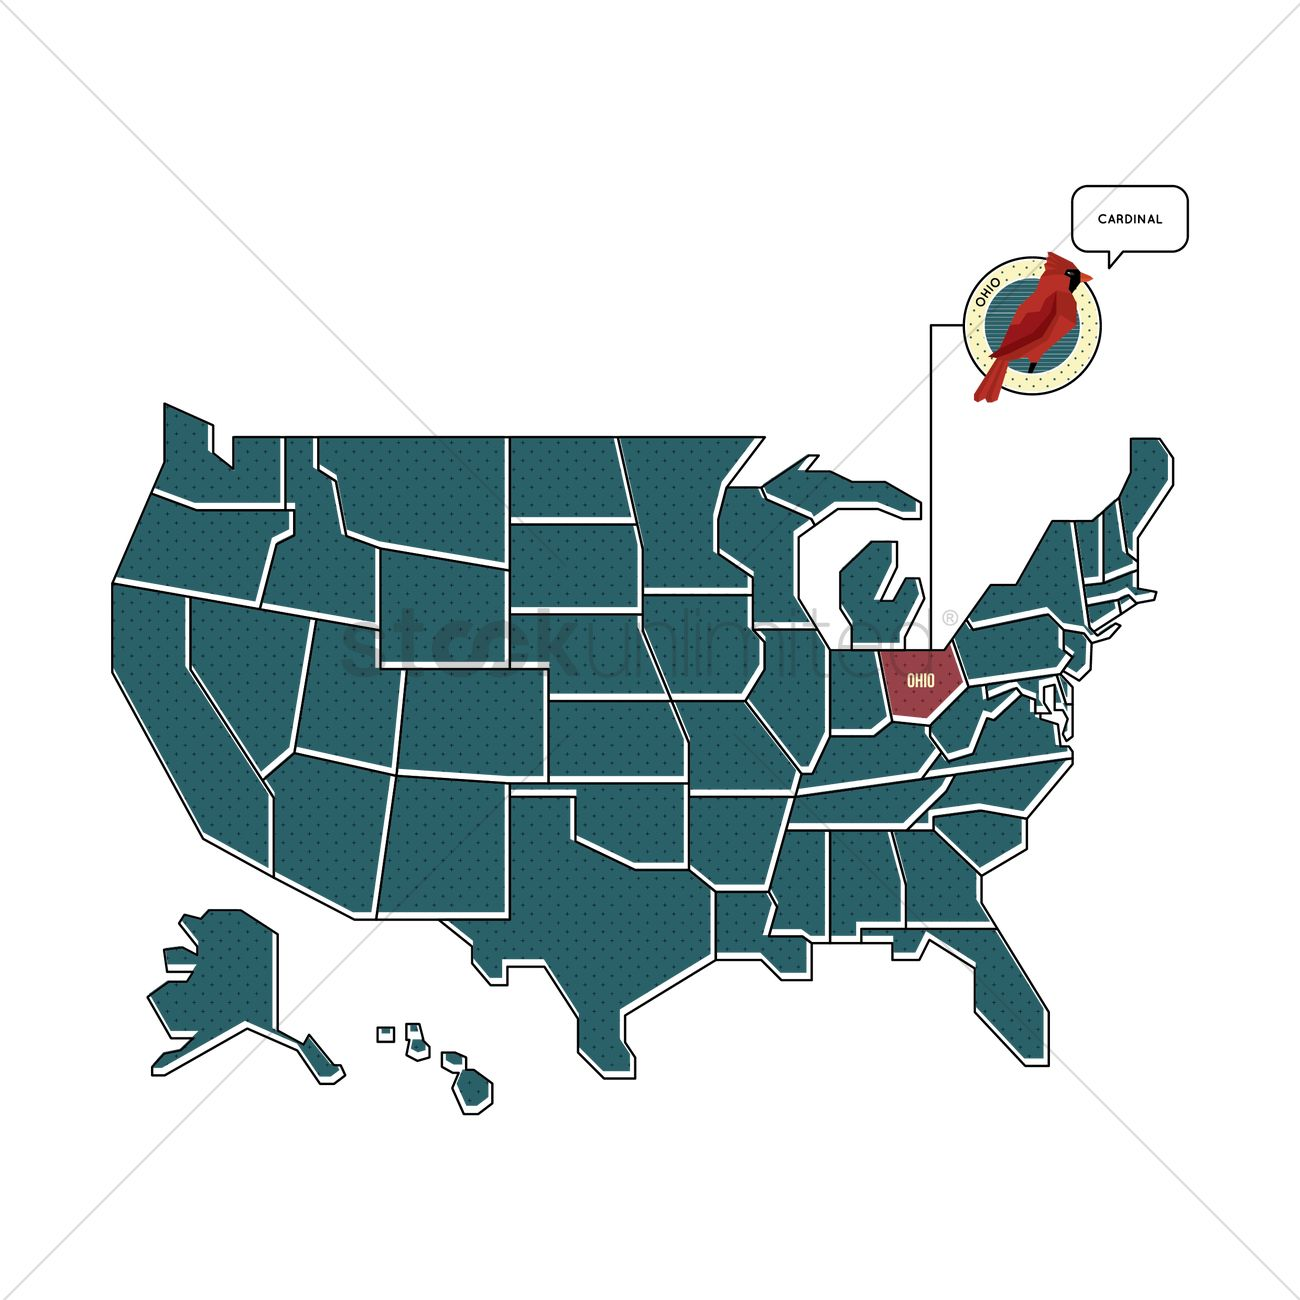 Us Map With Ohio State Bird Vector Image 1567467 Stockunlimited - Ohio-in-the-us-map